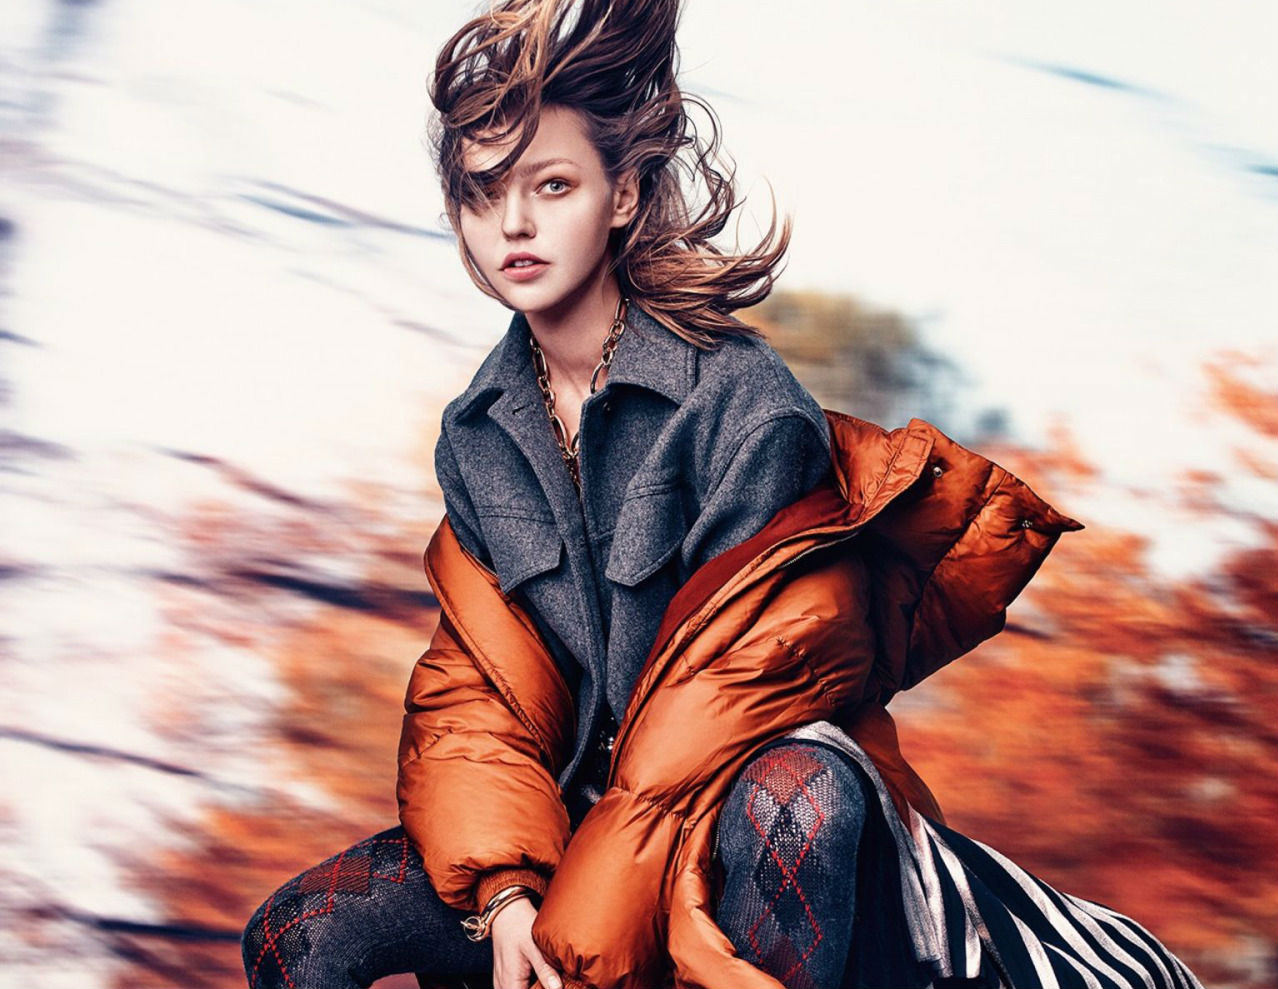 sasha-pivovarova-by-craig-mcdean-for-vogue-uk-october-2016-12